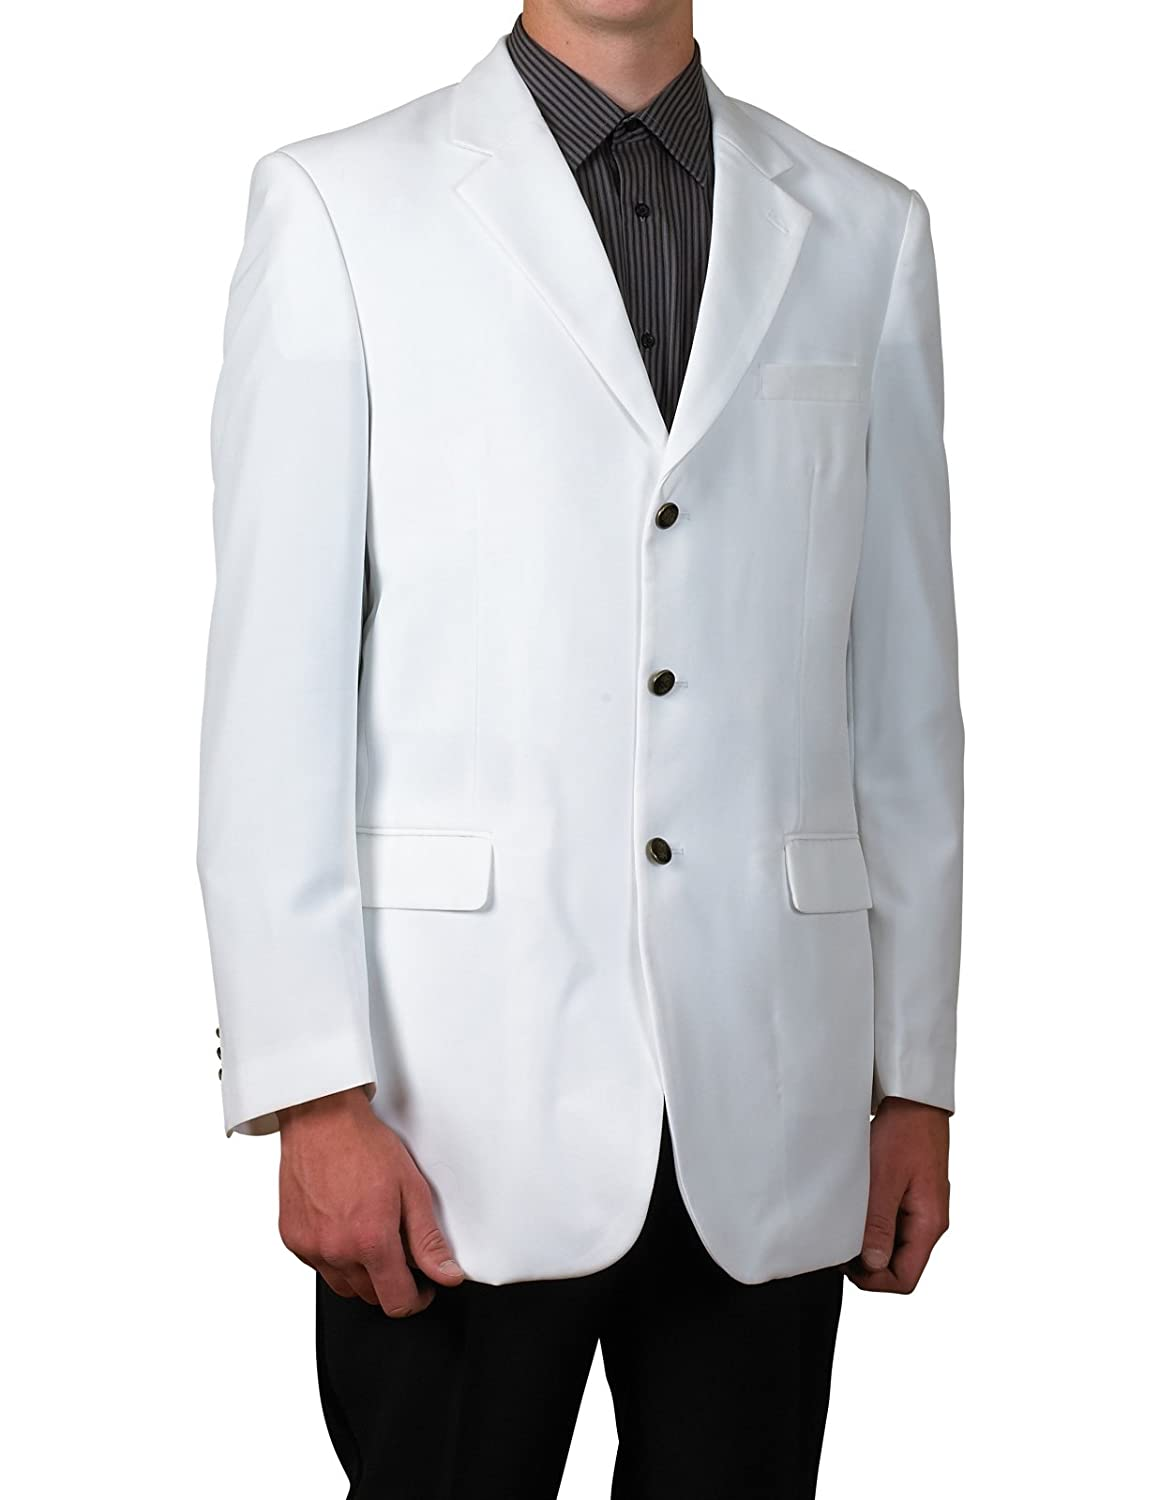 New Mens 3 Button Single Breasted White Blazer Sportcoat Suit ...